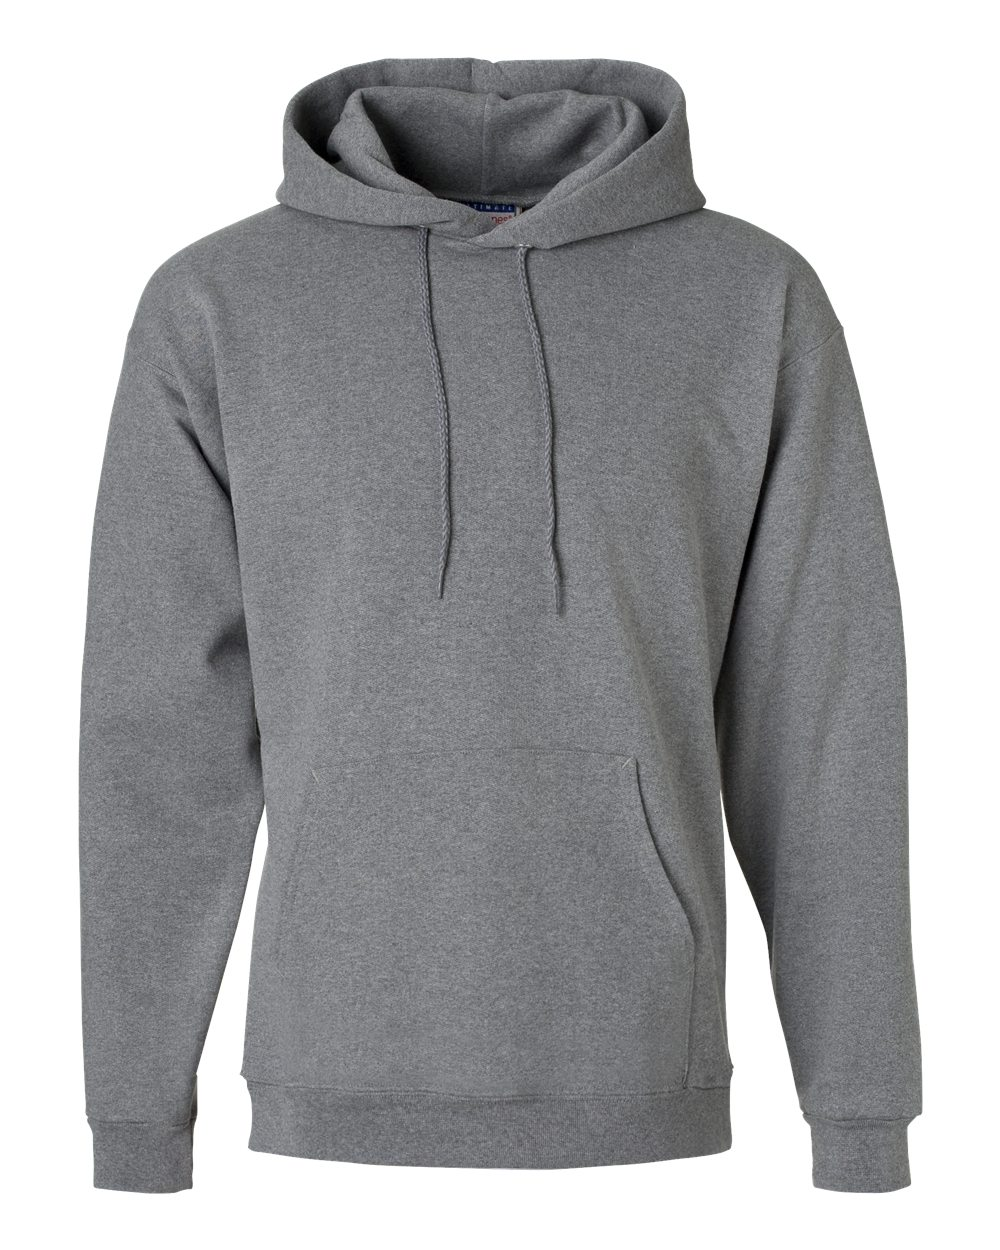 View Item: Hanes - Ultimate Cotton Hooded Sweatshirt - F170 ...